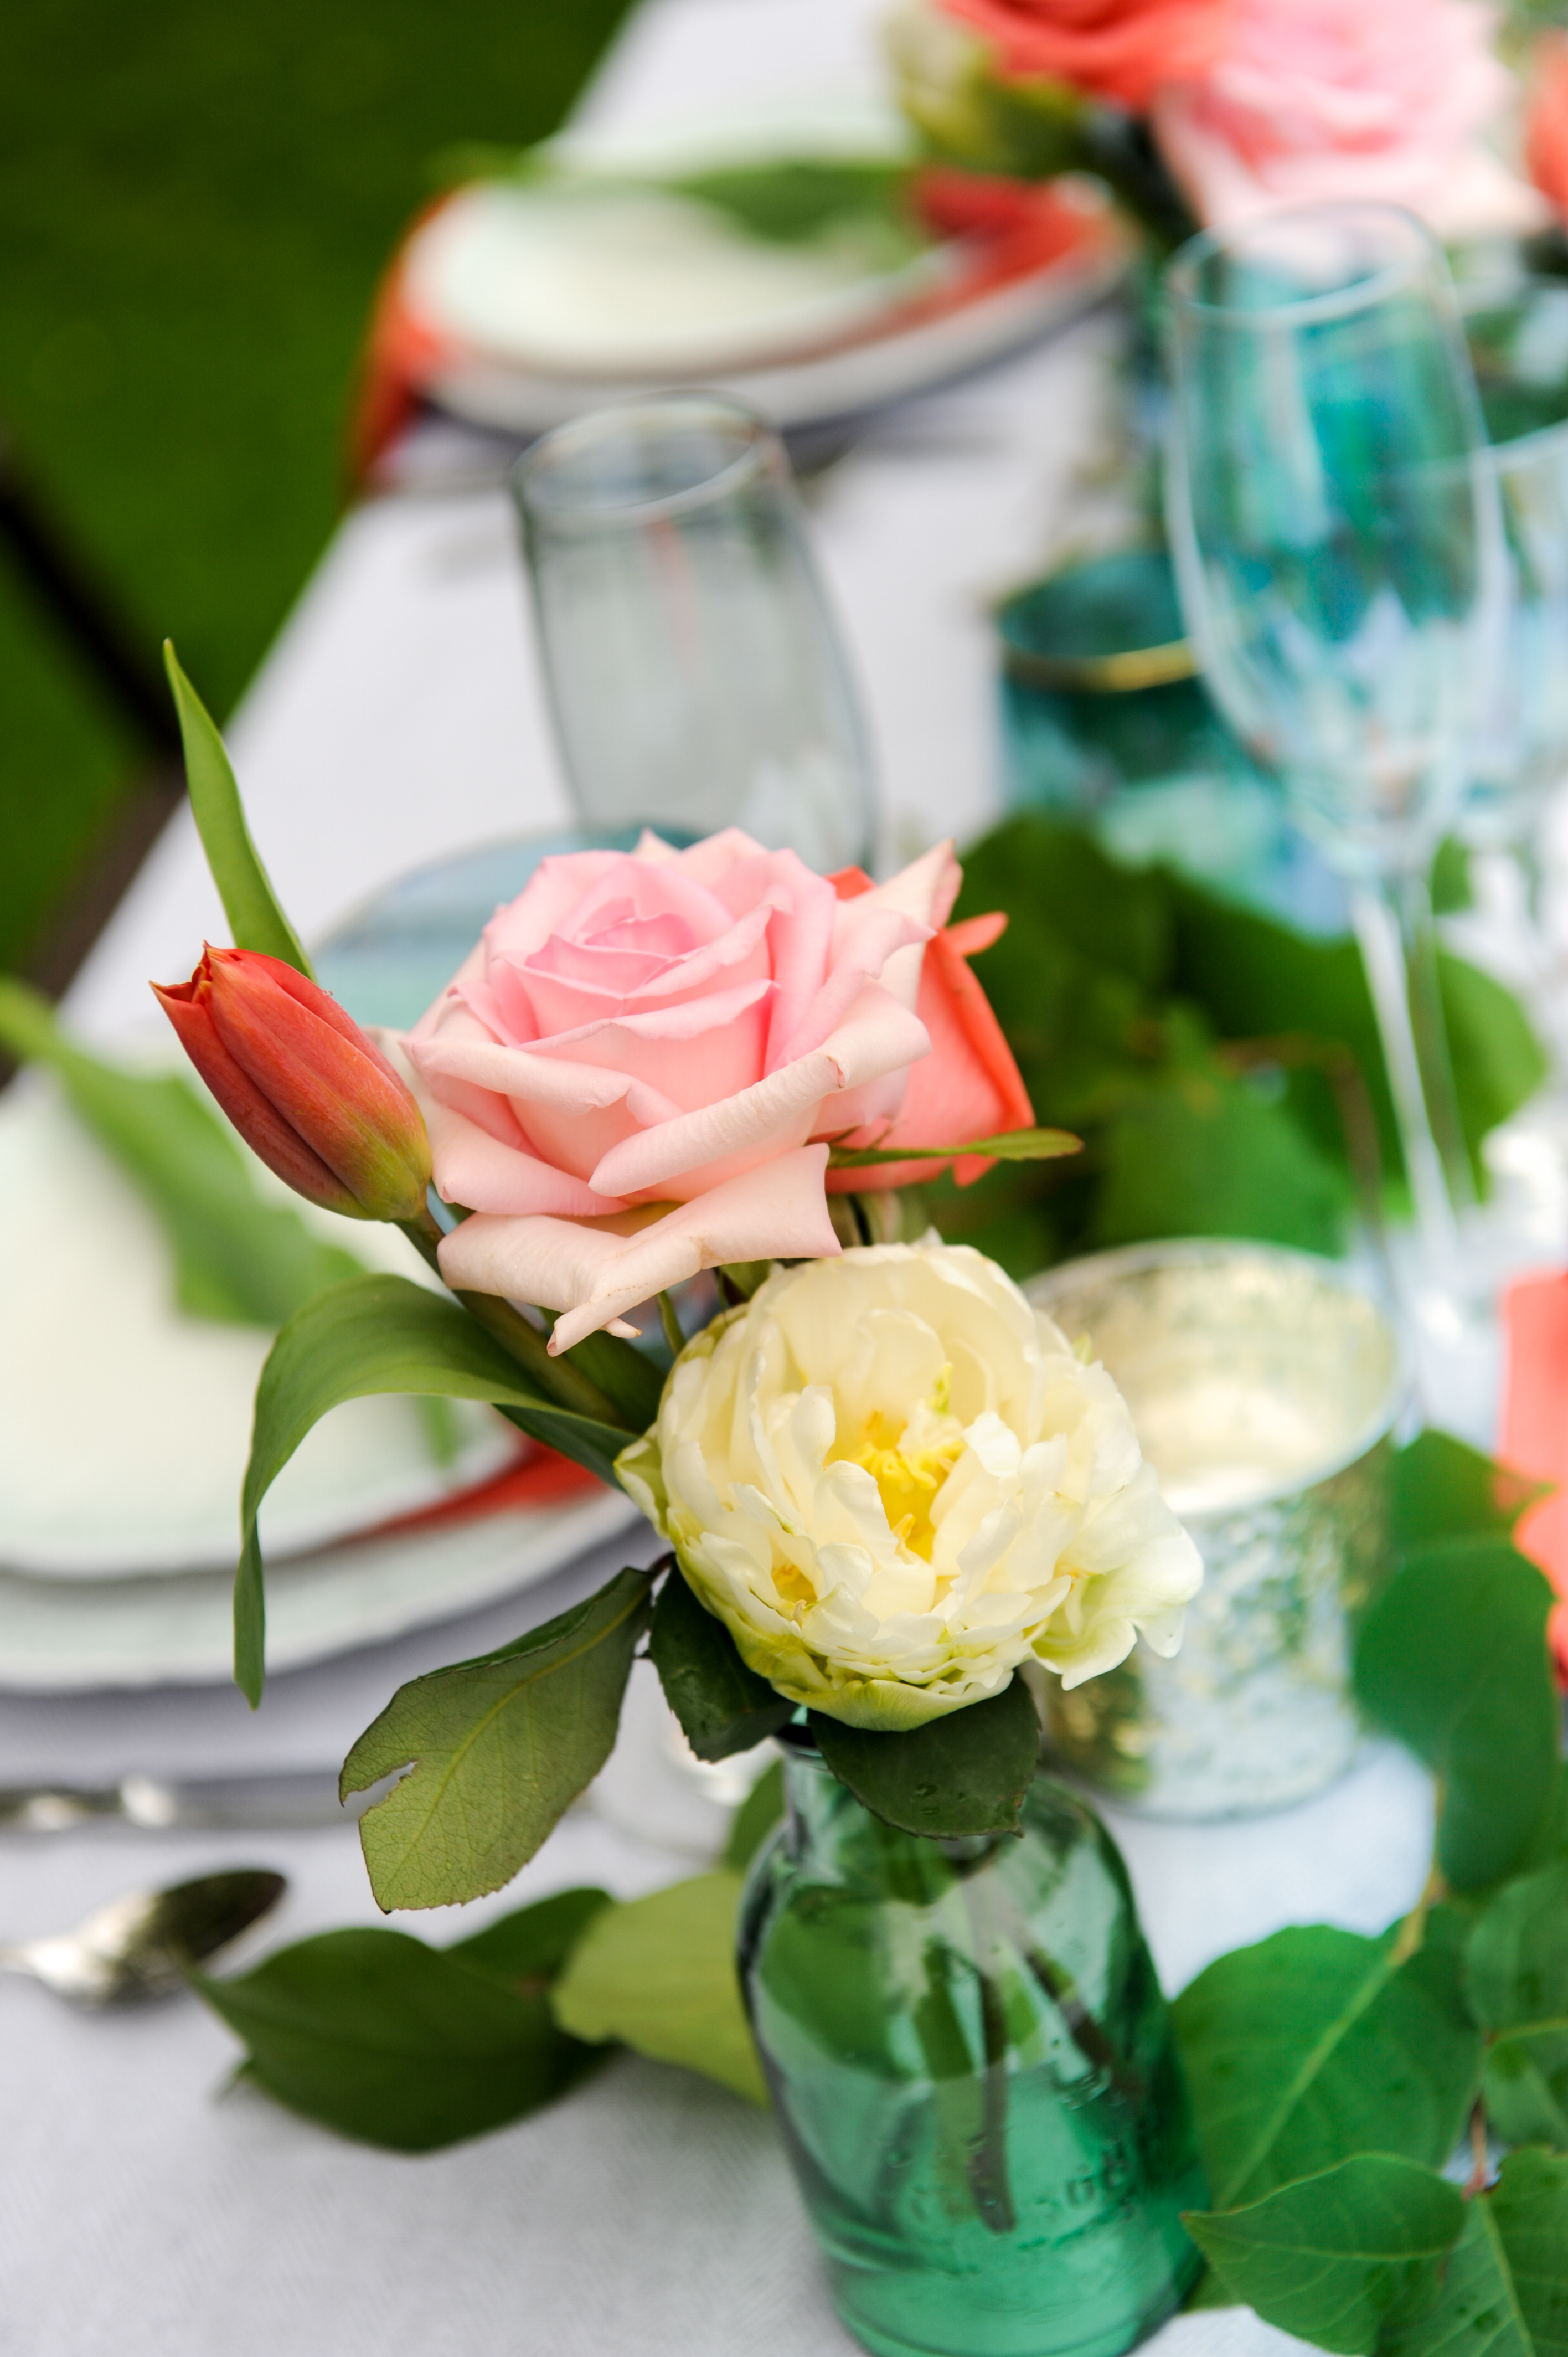 TableSetting2019-1011